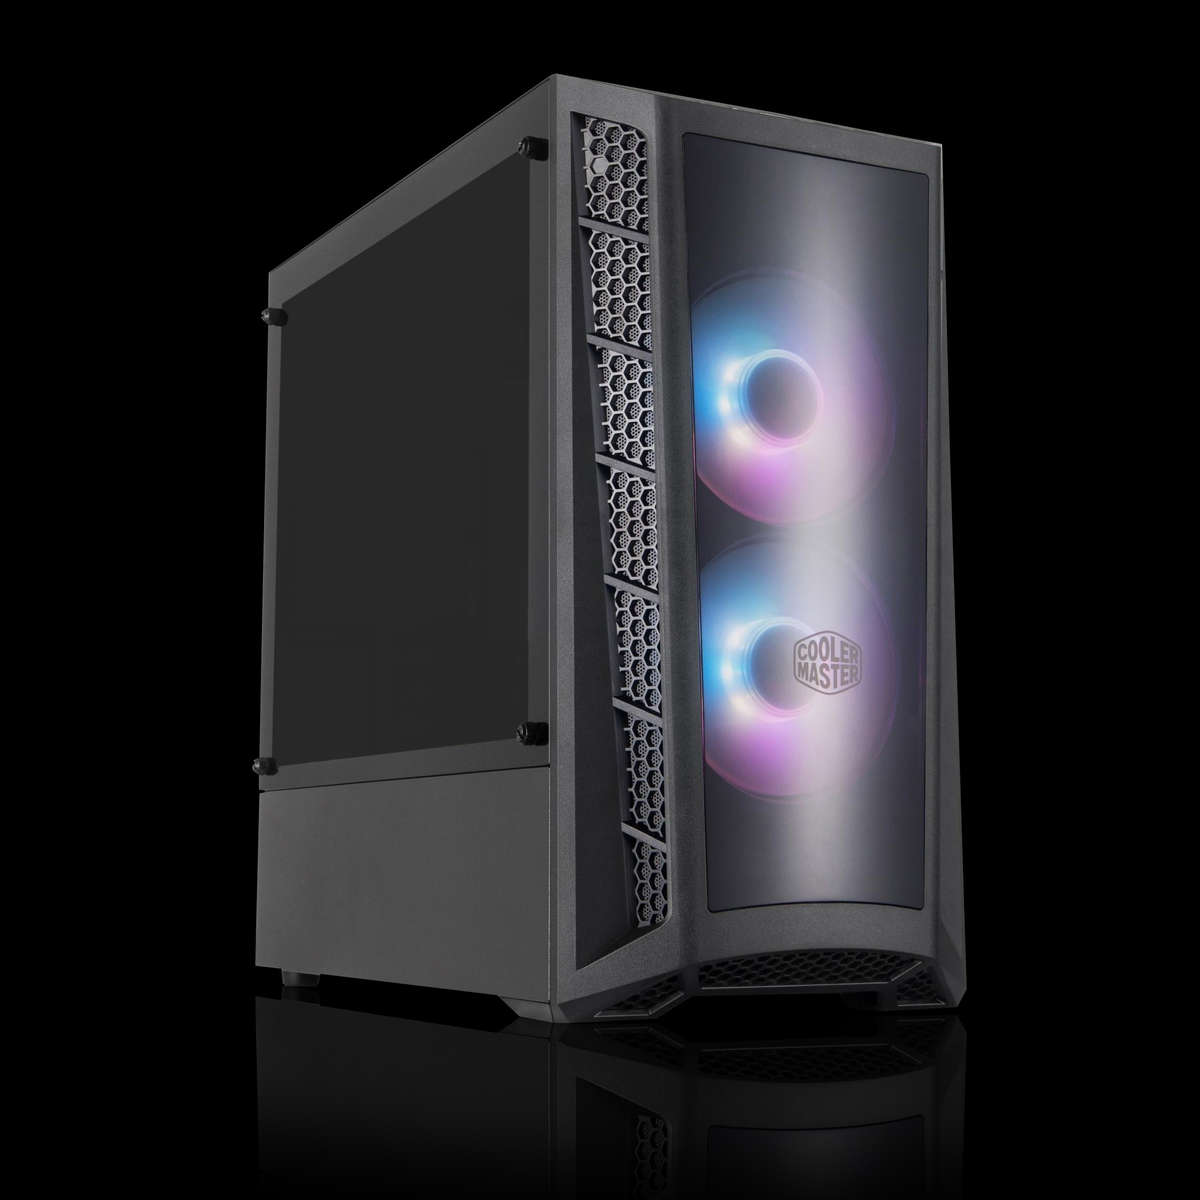 Image of the Chillblast Fusion Fiend gaming PC